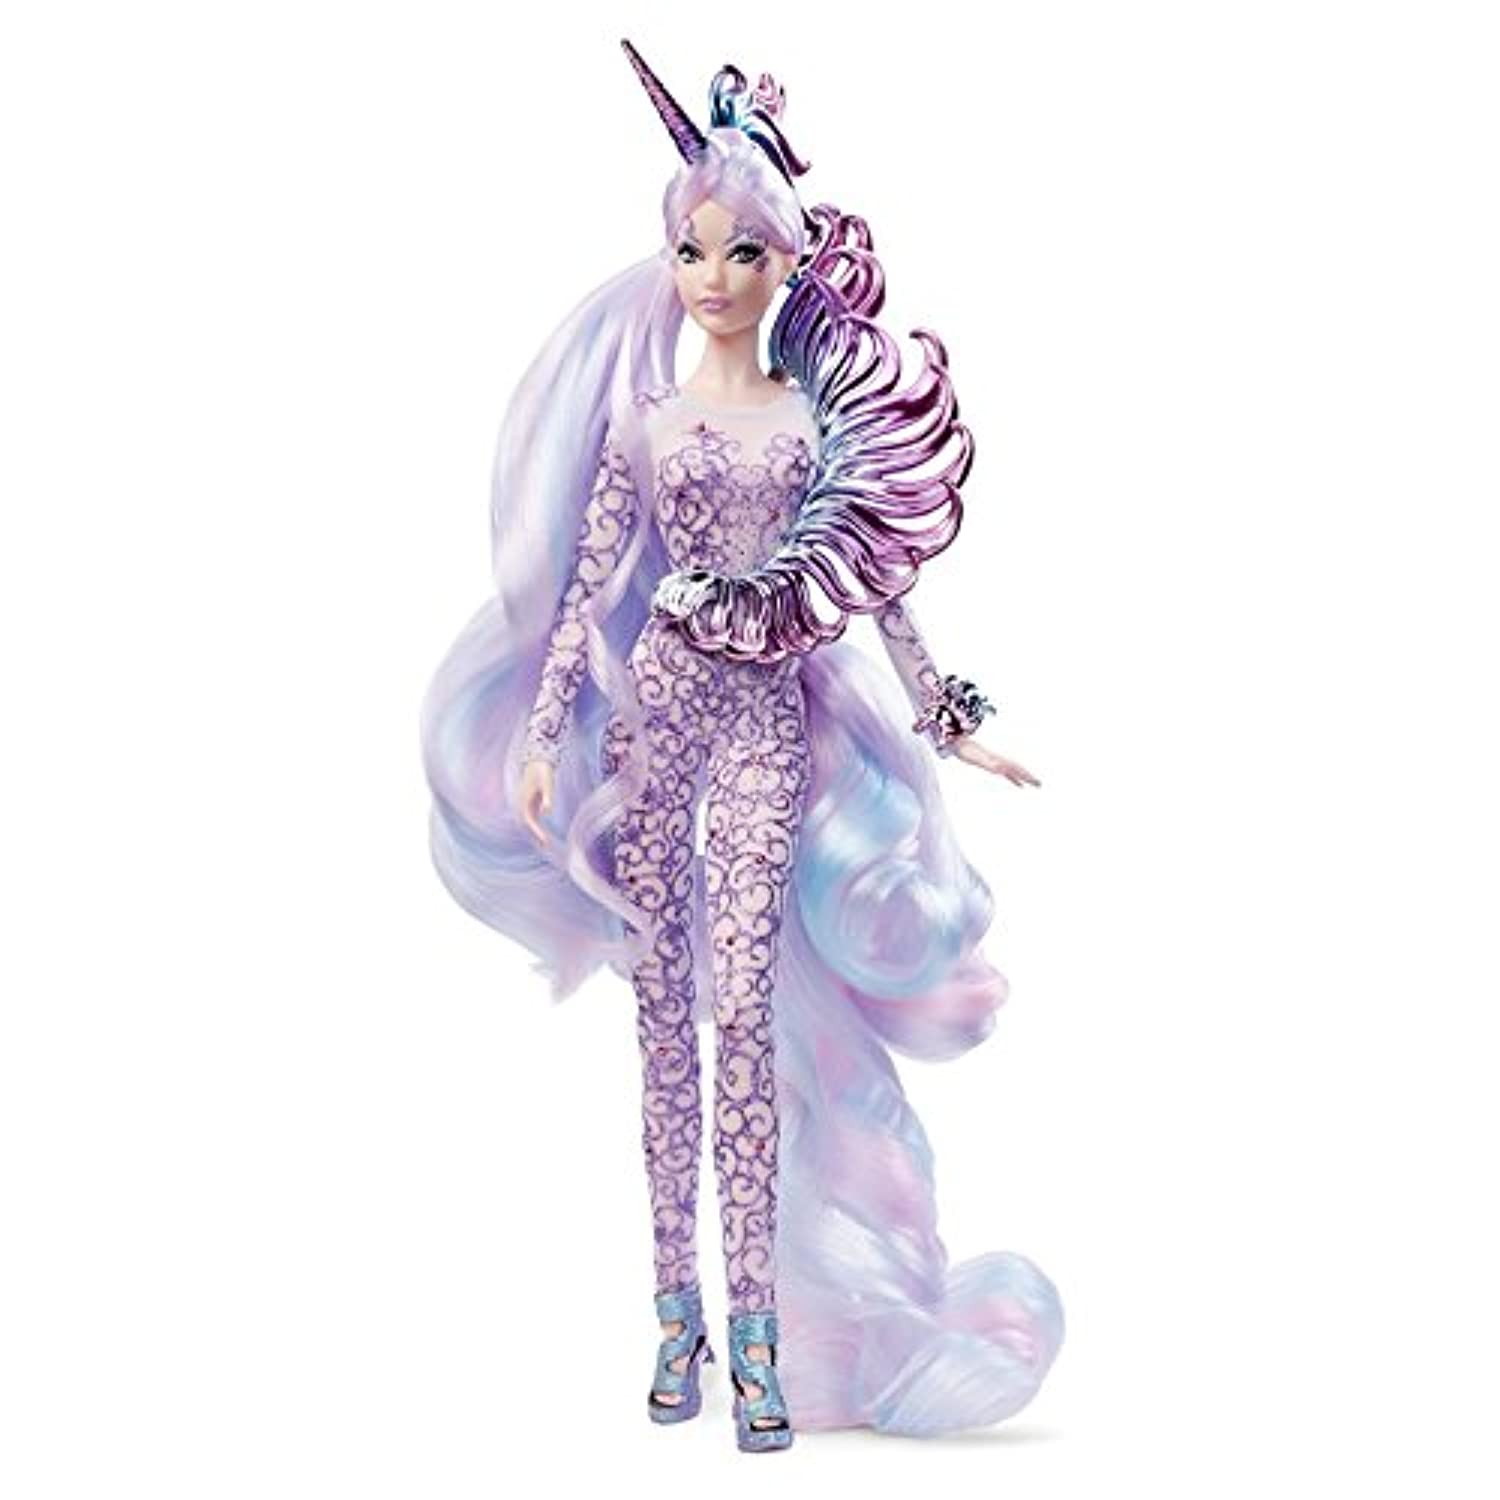 Barbie Unicorn Goddess Doll